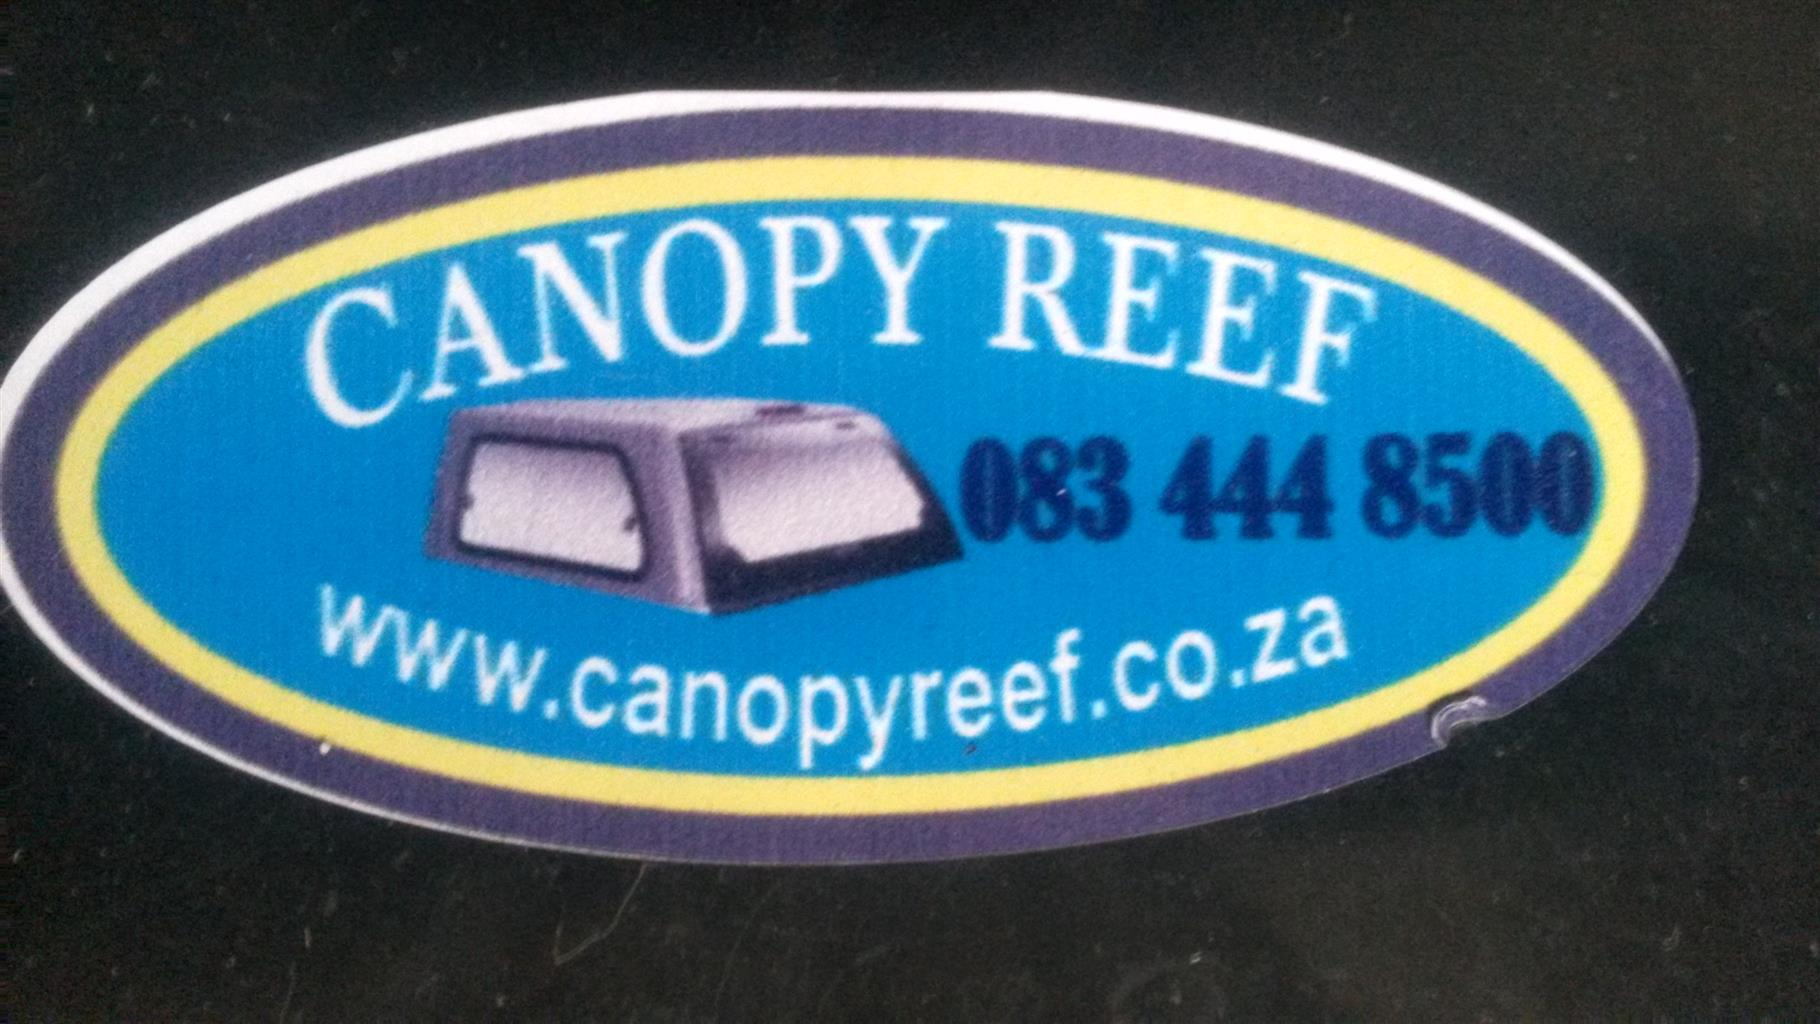 Canopy Reef:  New and used canopies for all makes and models of bakkies.